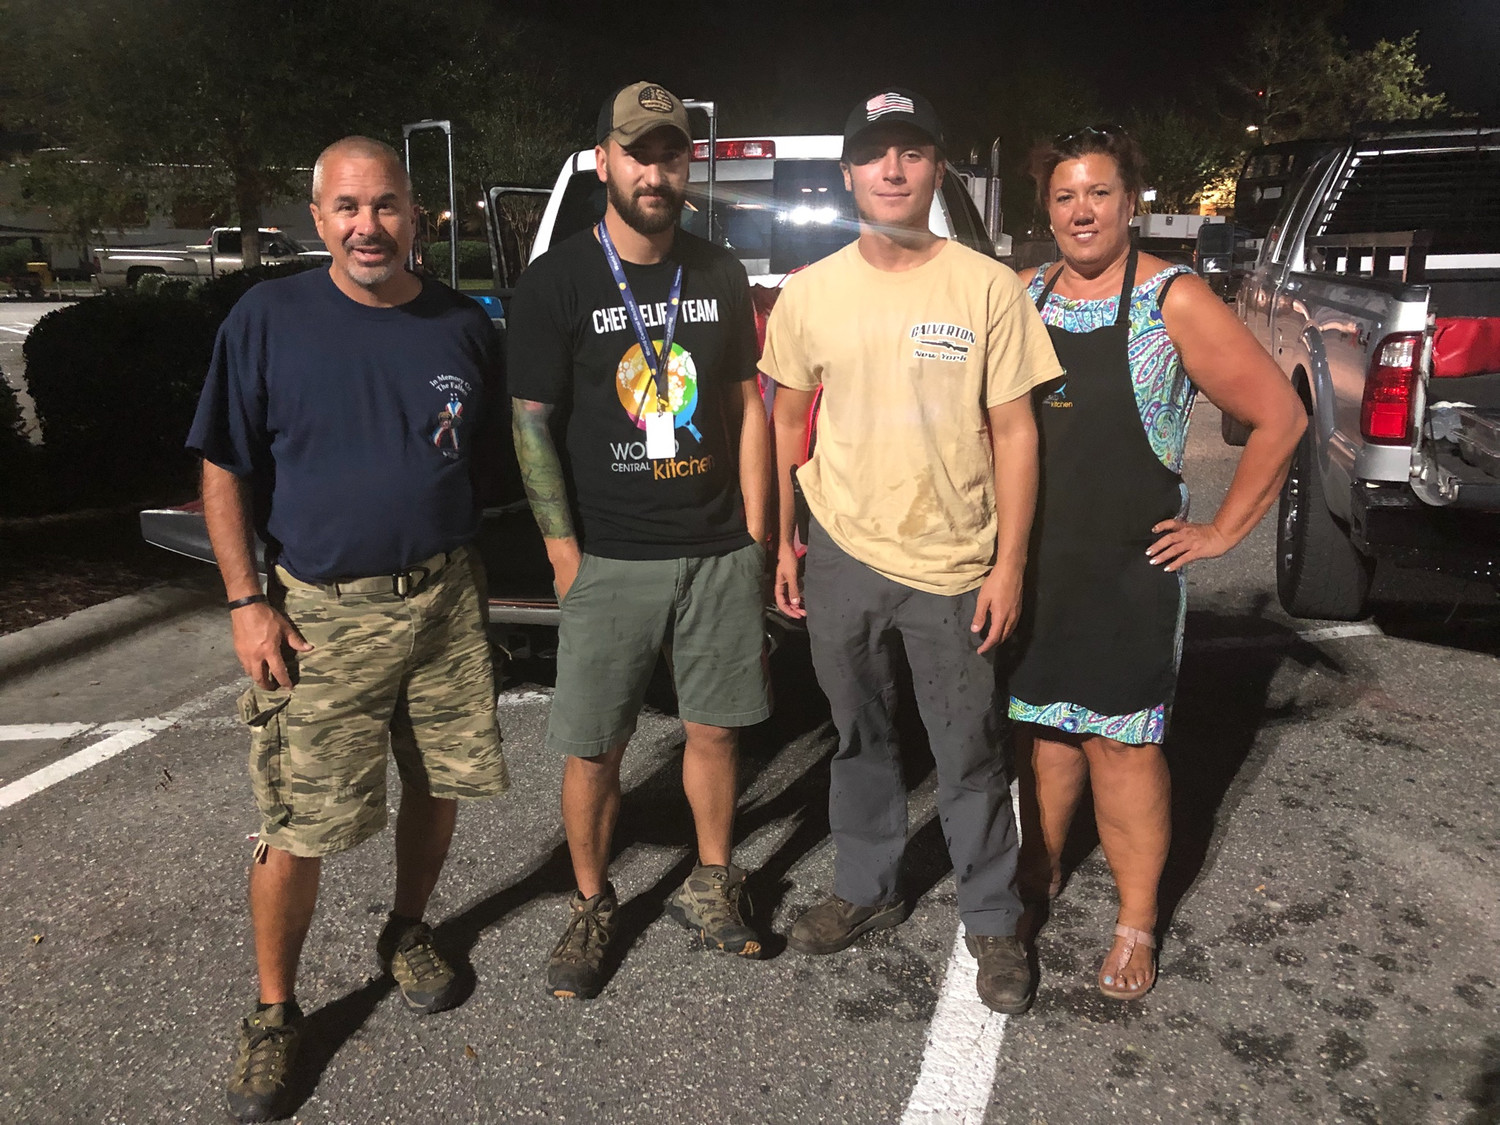 Long Beach lifeguards John Burke, far left, and Francis Nicpon, second from right, in Wilmington, N.C., with two other volunteers, Matt LeMasters and Christy Edwards of World Central Kitchen, a nonprofit that served meals to first responders and victims of Hurricane Florence.